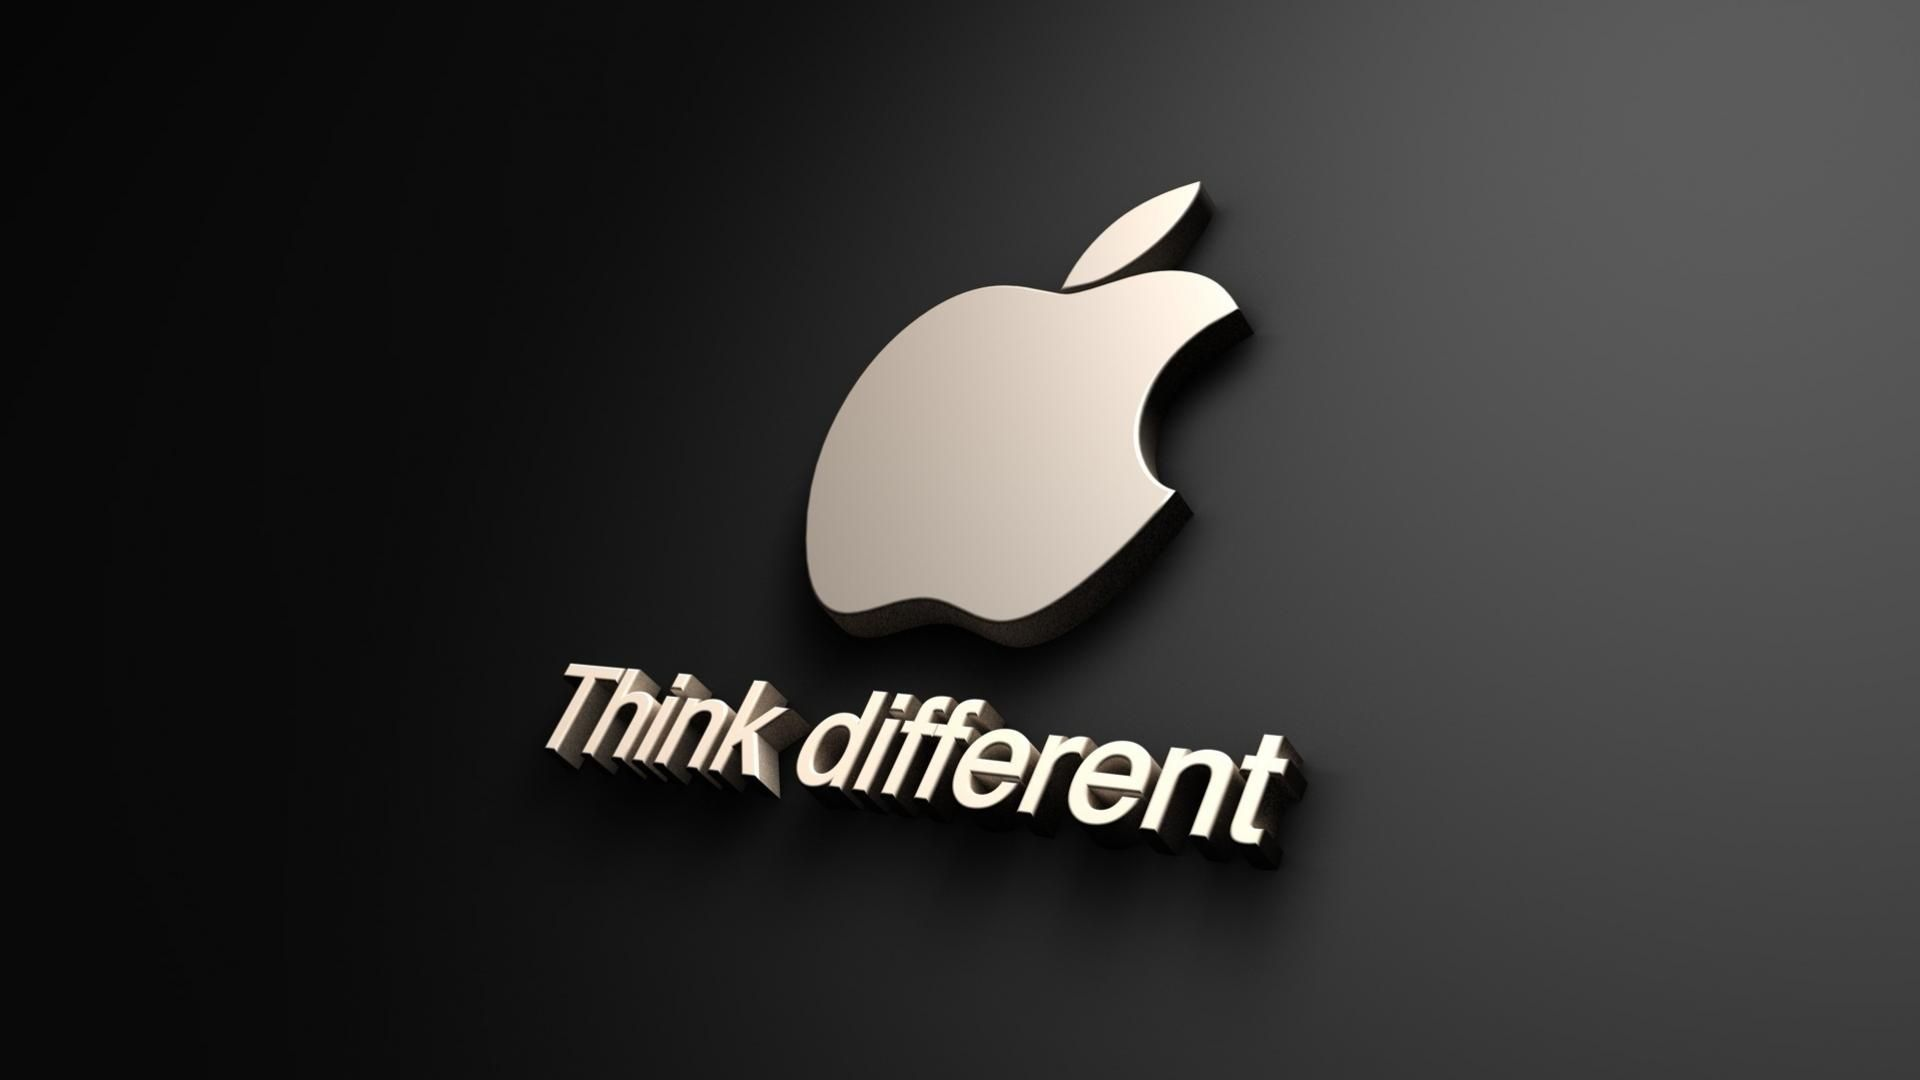 Best apple images on pinterest art wallpapers pinterest hd apple wallpaper biocorpaavc Gallery